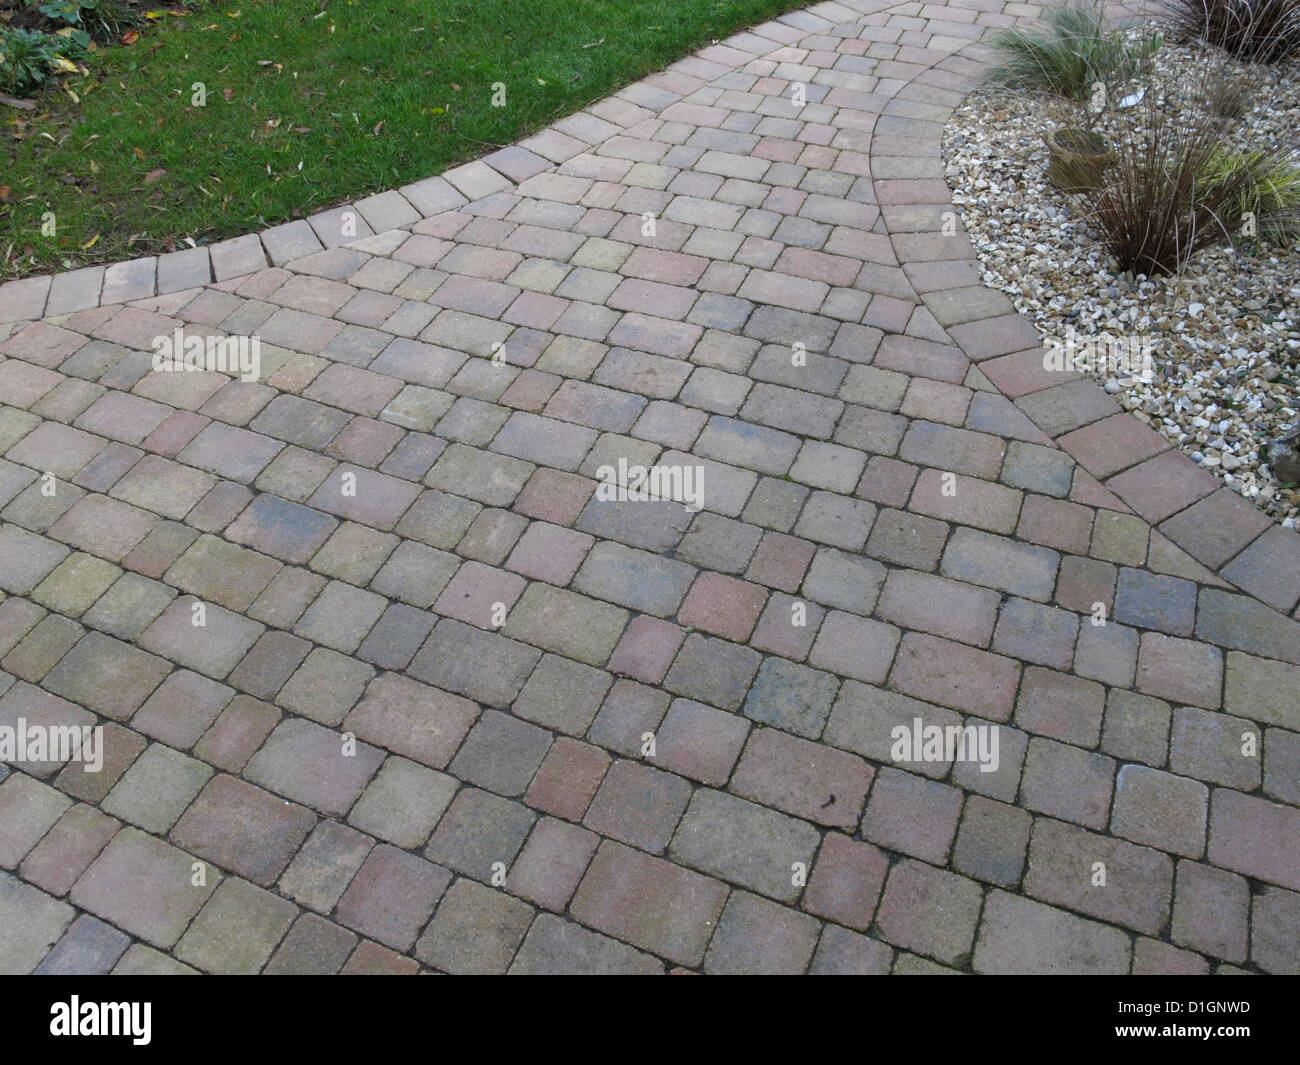 Rustic red brick patio block paving in UK garden with porous joints acting as Sustainable drainage system surface - Stock Image